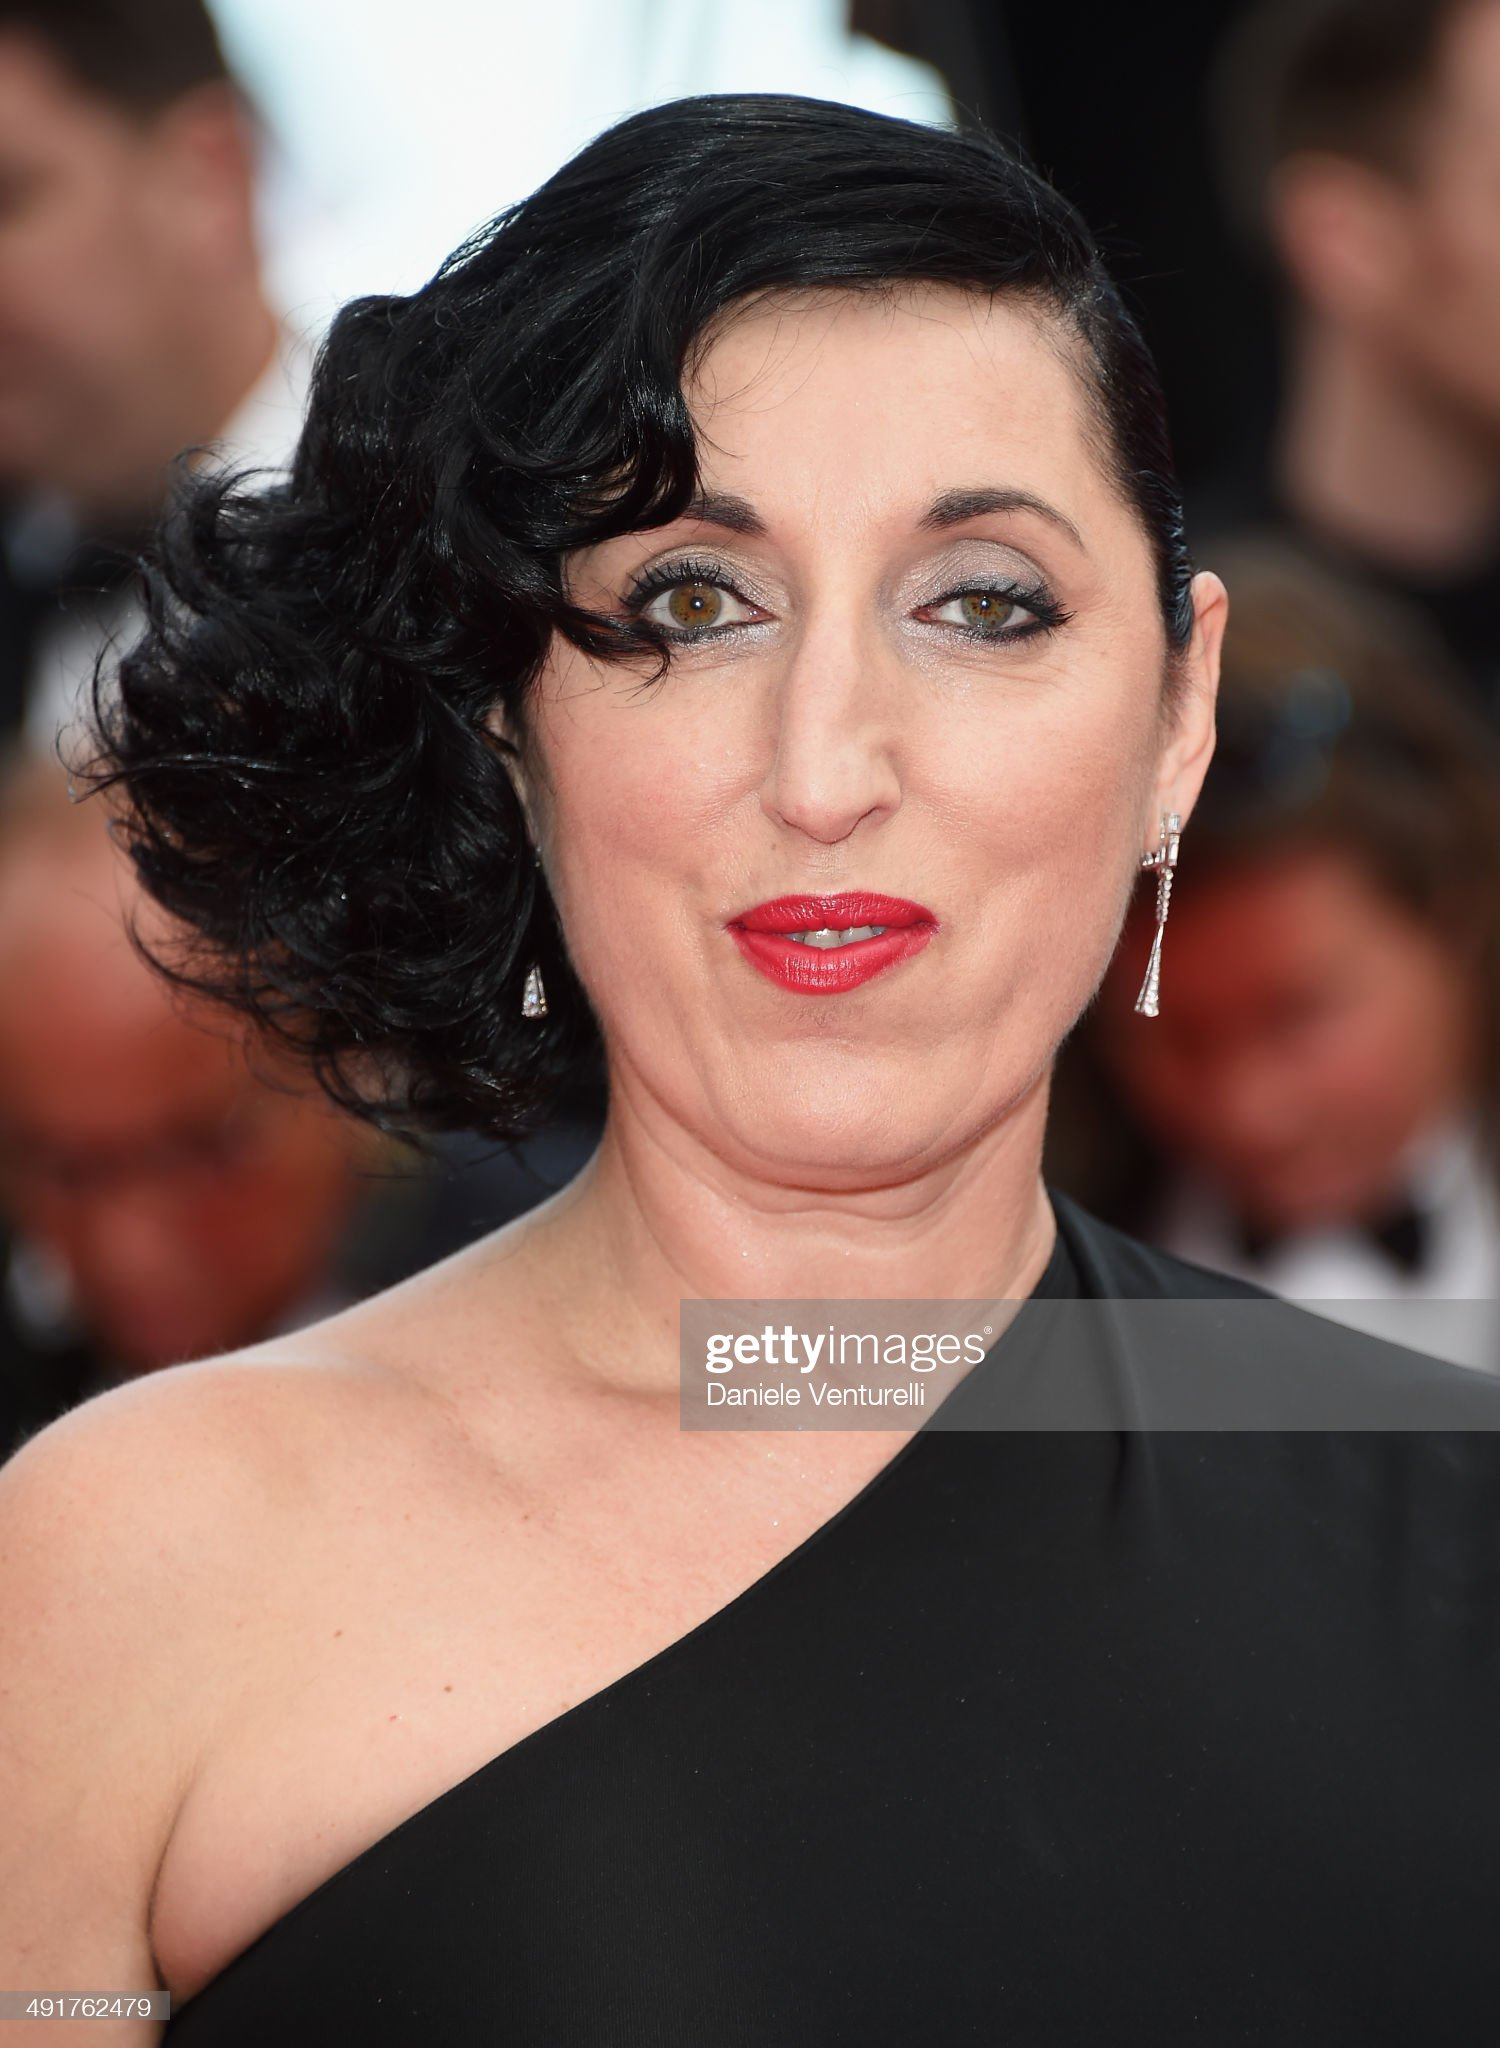 ¿Cuánto mide Rossy de Palma? Actress-rossy-de-palma-attends-the-saint-laurent-premiere-at-the-67th-picture-id491762479?s=2048x2048